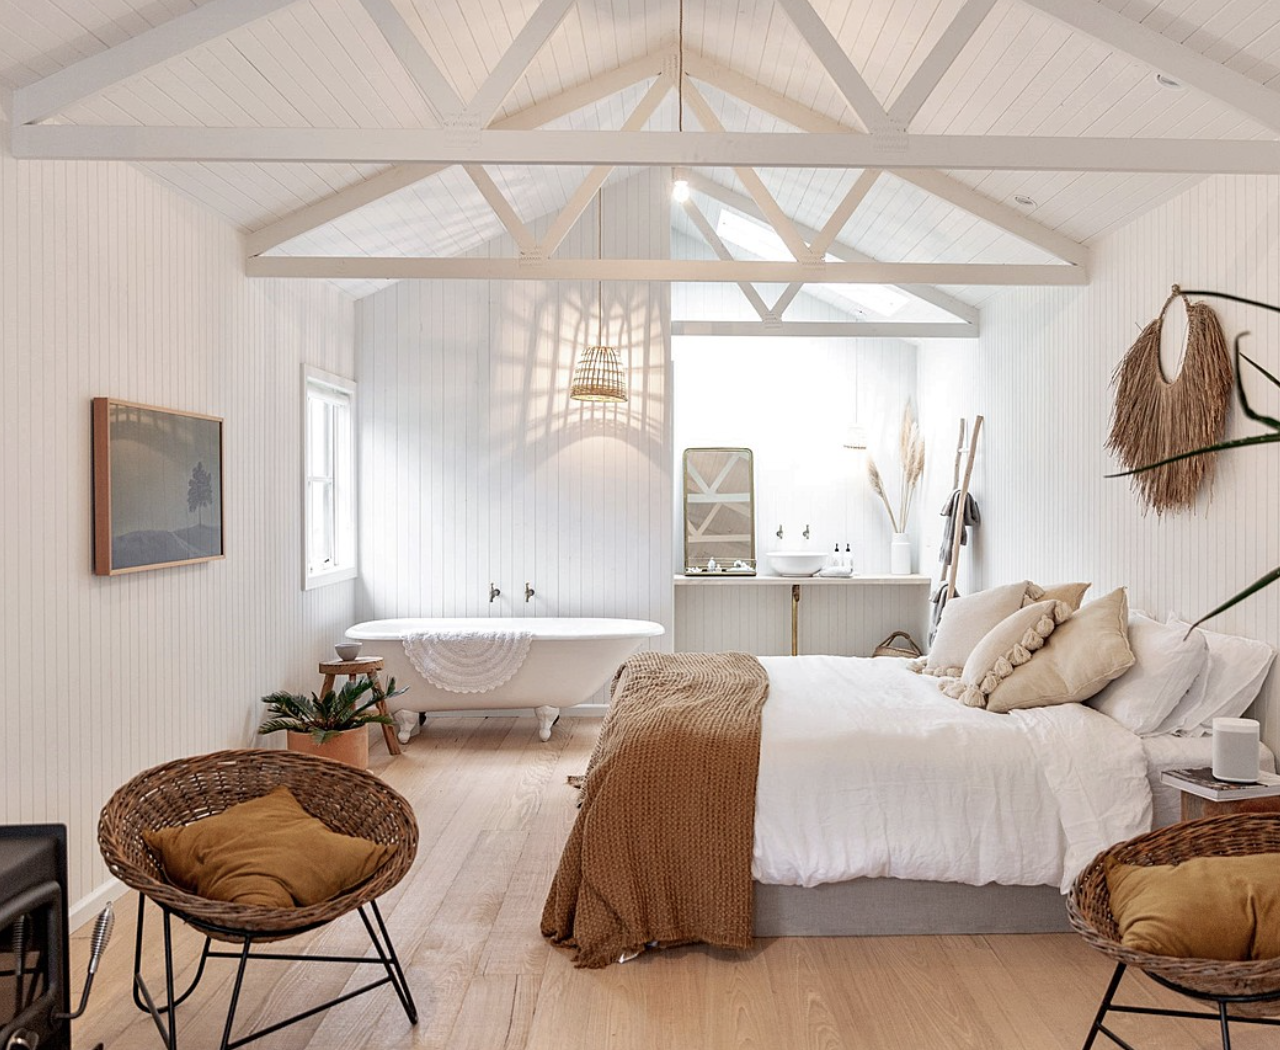 eco retreat in 2020 Guest house shed, Renting a house